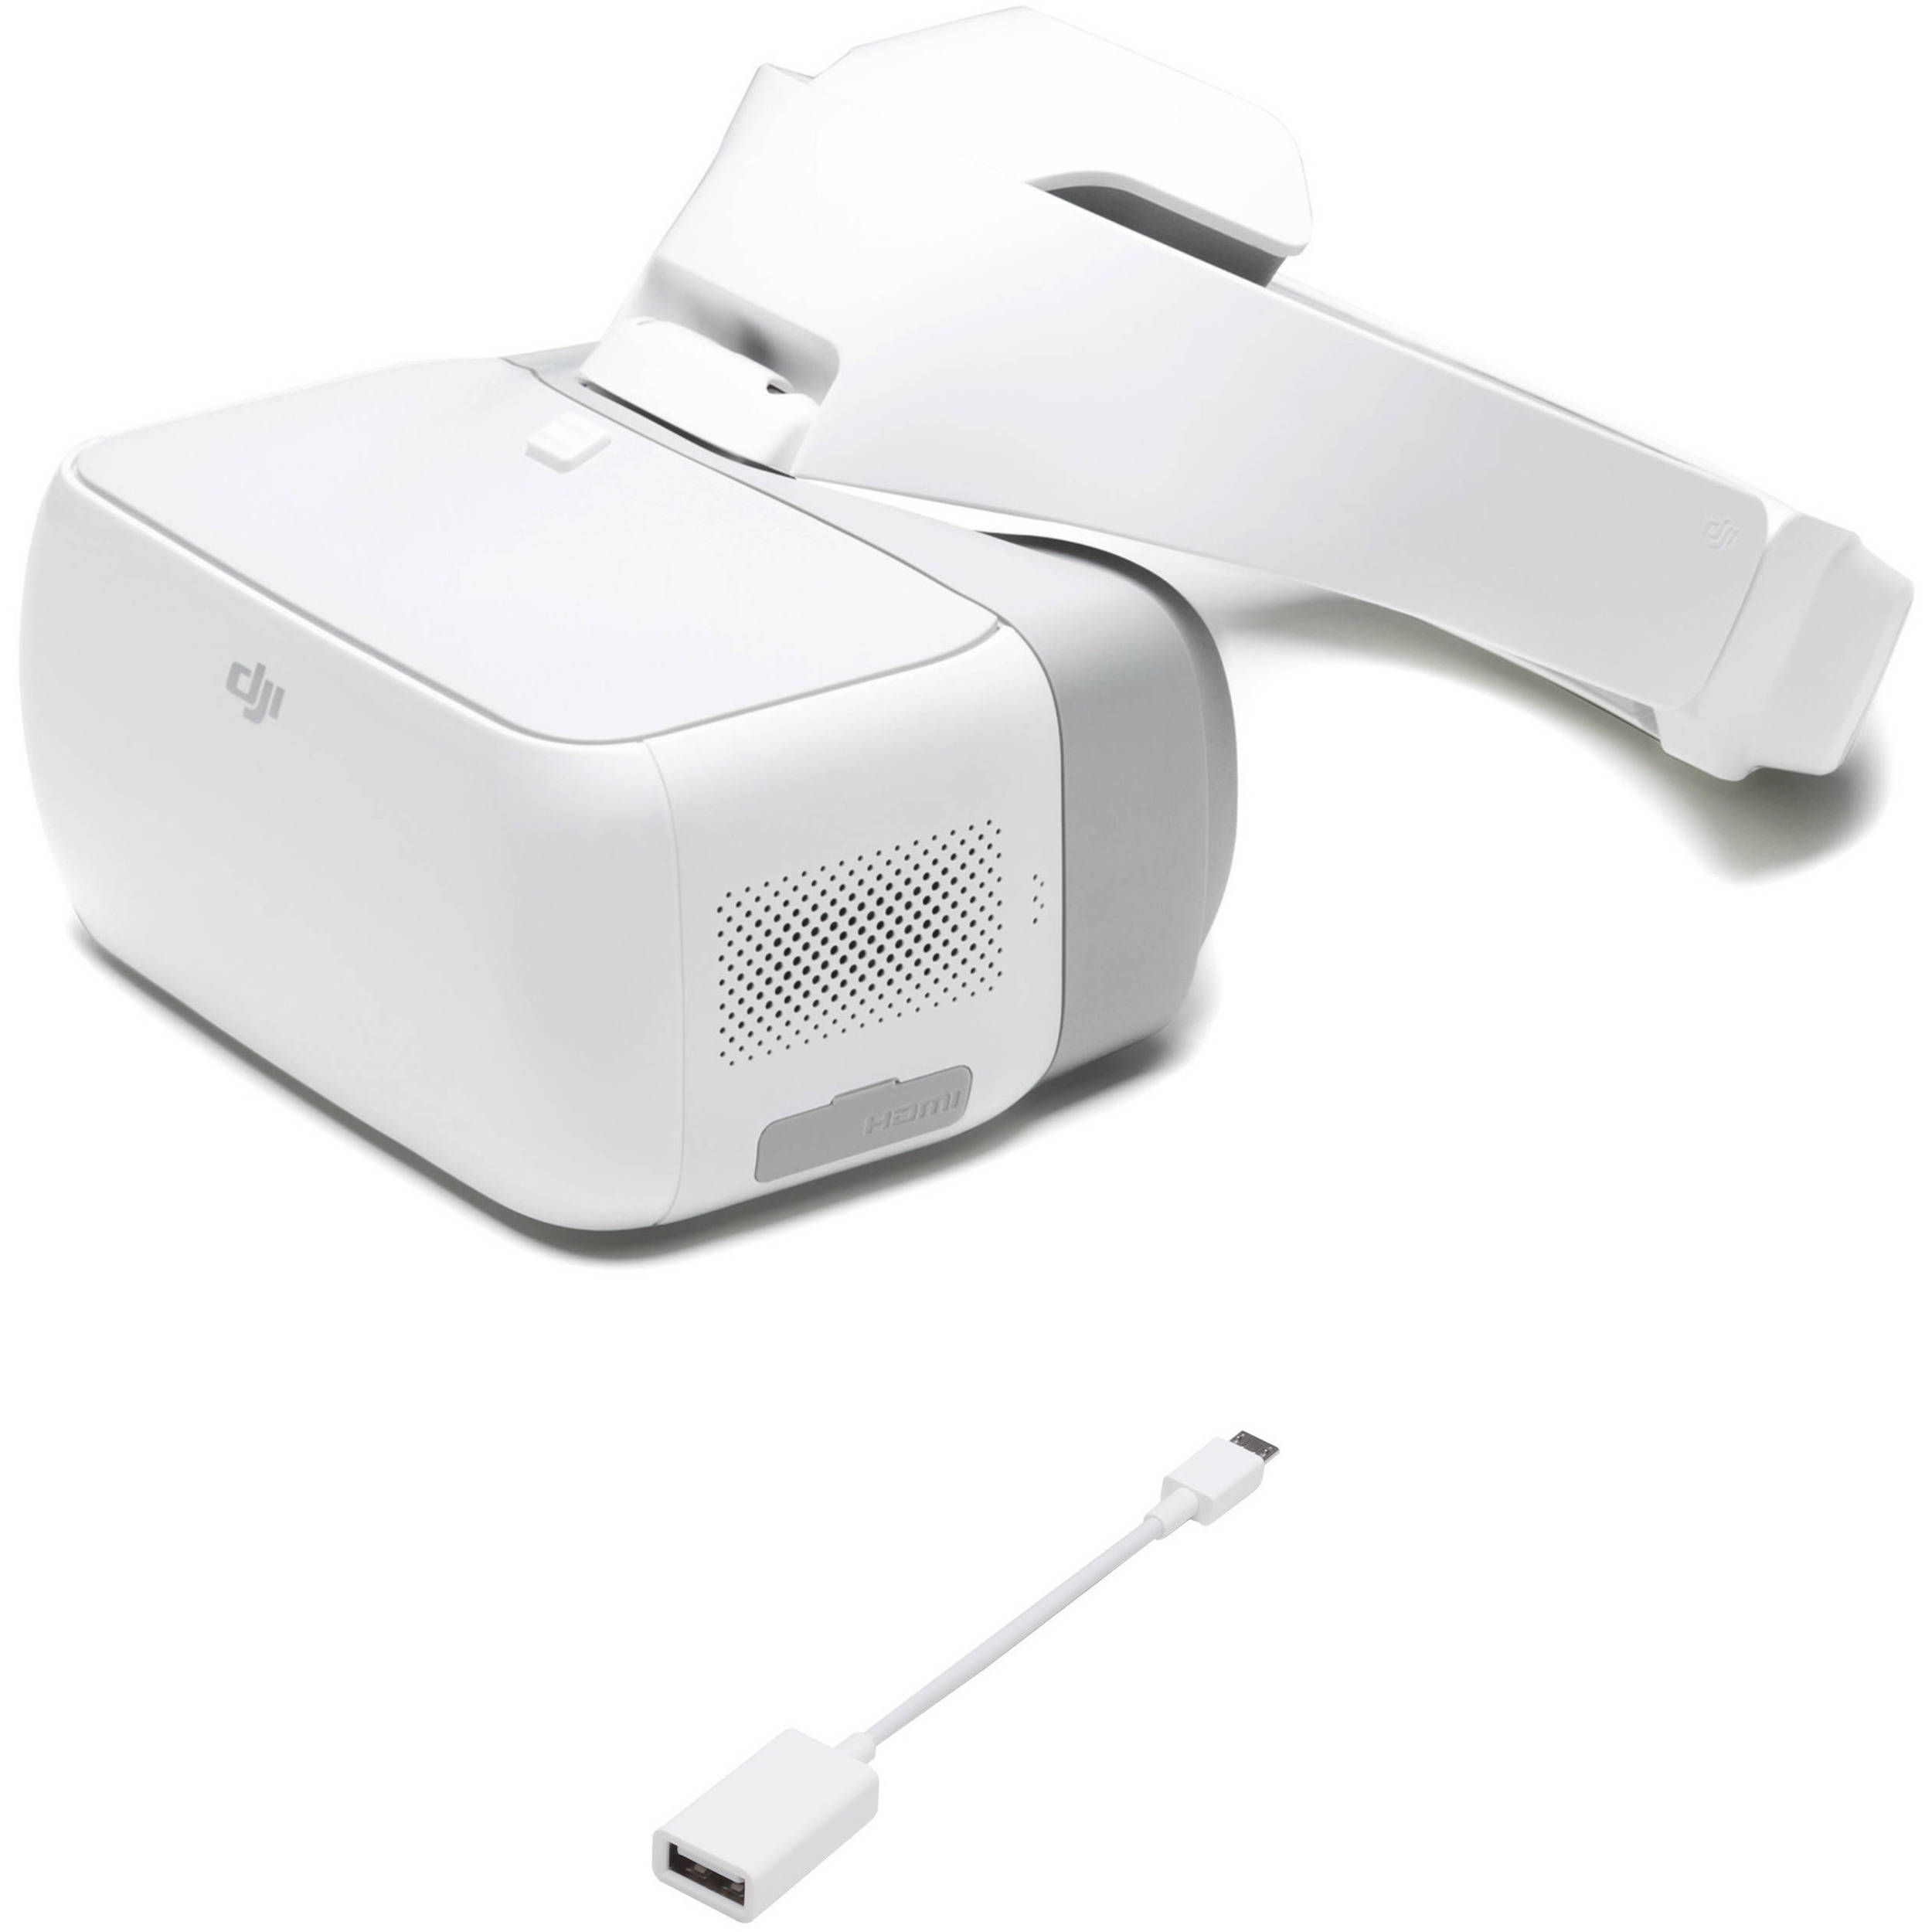 Dji Goggles Fpv Headset Kit With Micro Usb Otg Cable B Amp H Photo